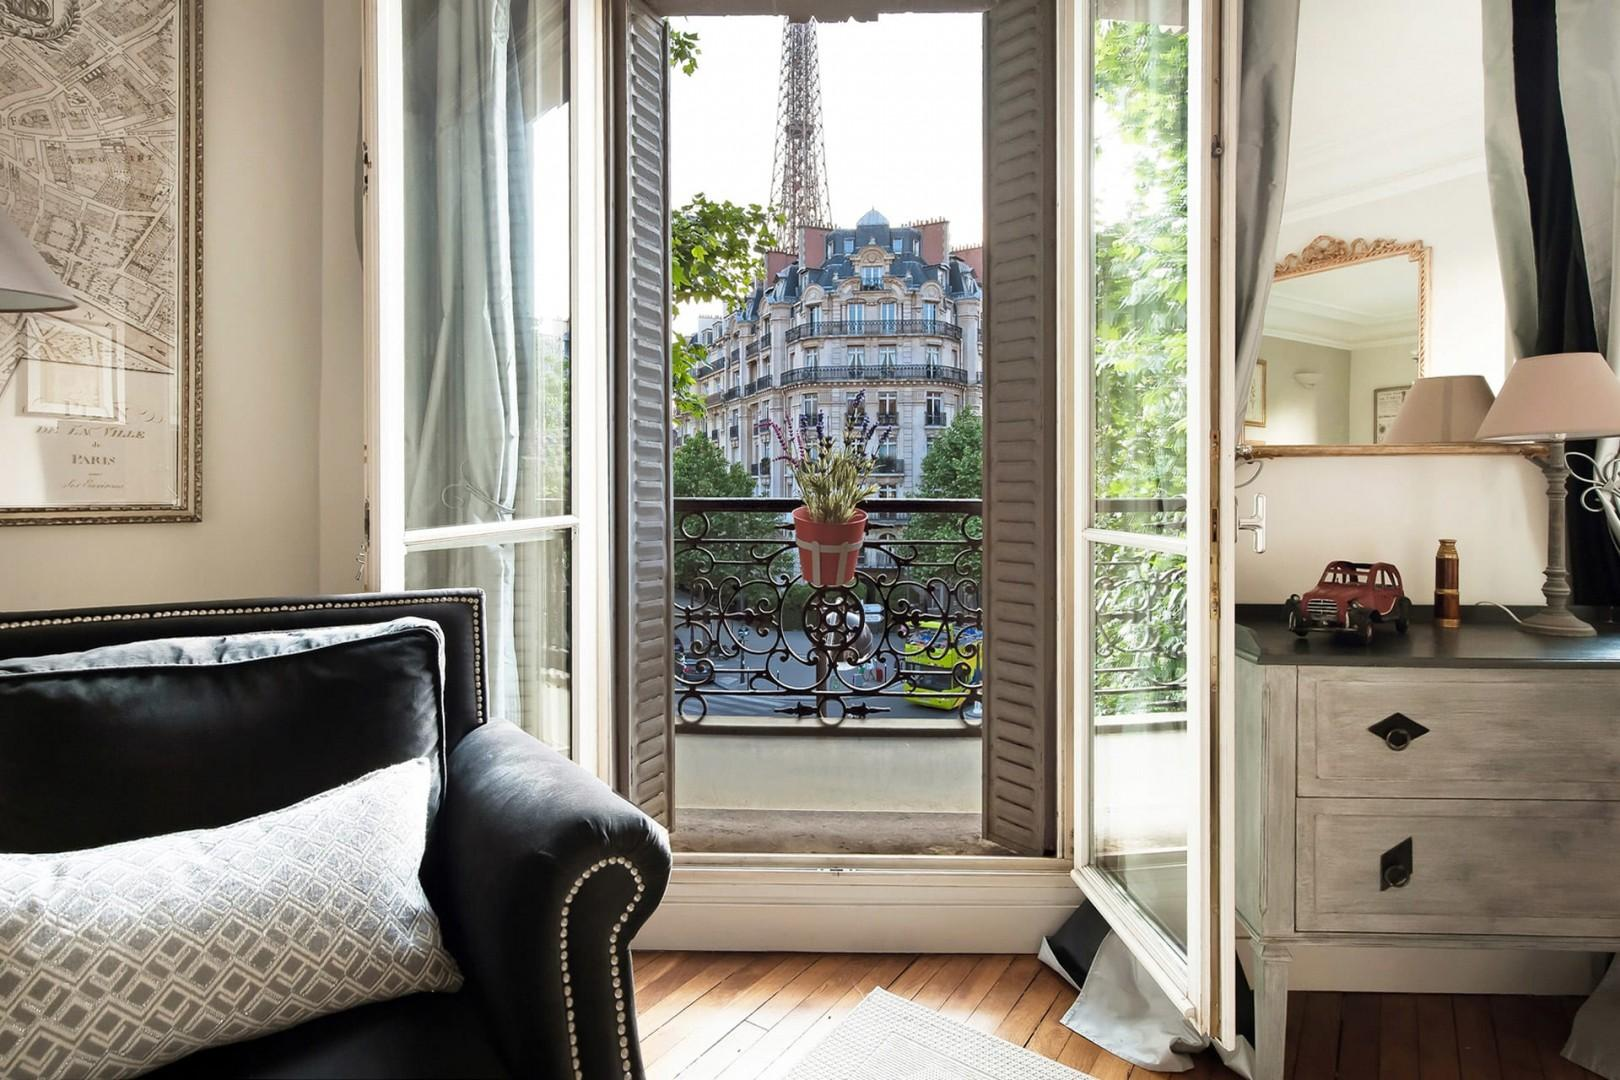 Soak in the Parisian atmosphere in the charming 7th arrondissement.